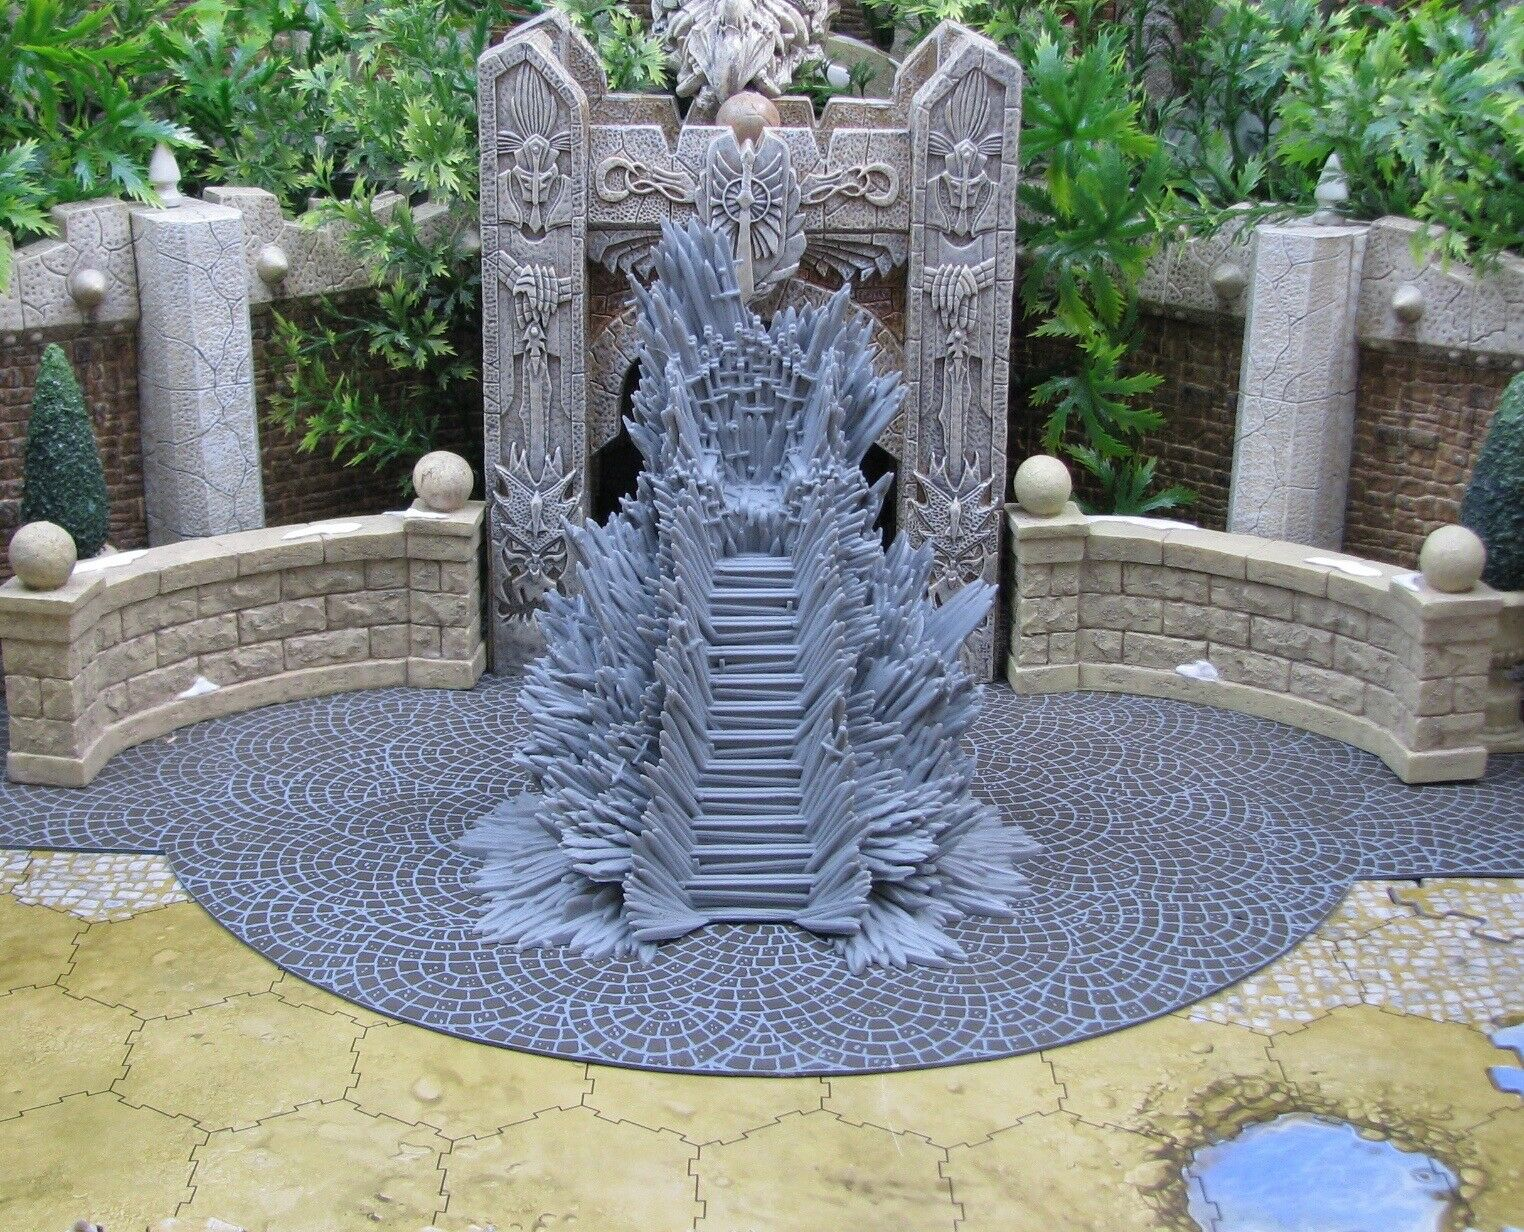 Iron Throne A Song of Ice and Fire CMoN Game of Thrones miniatures terrain 32 mm